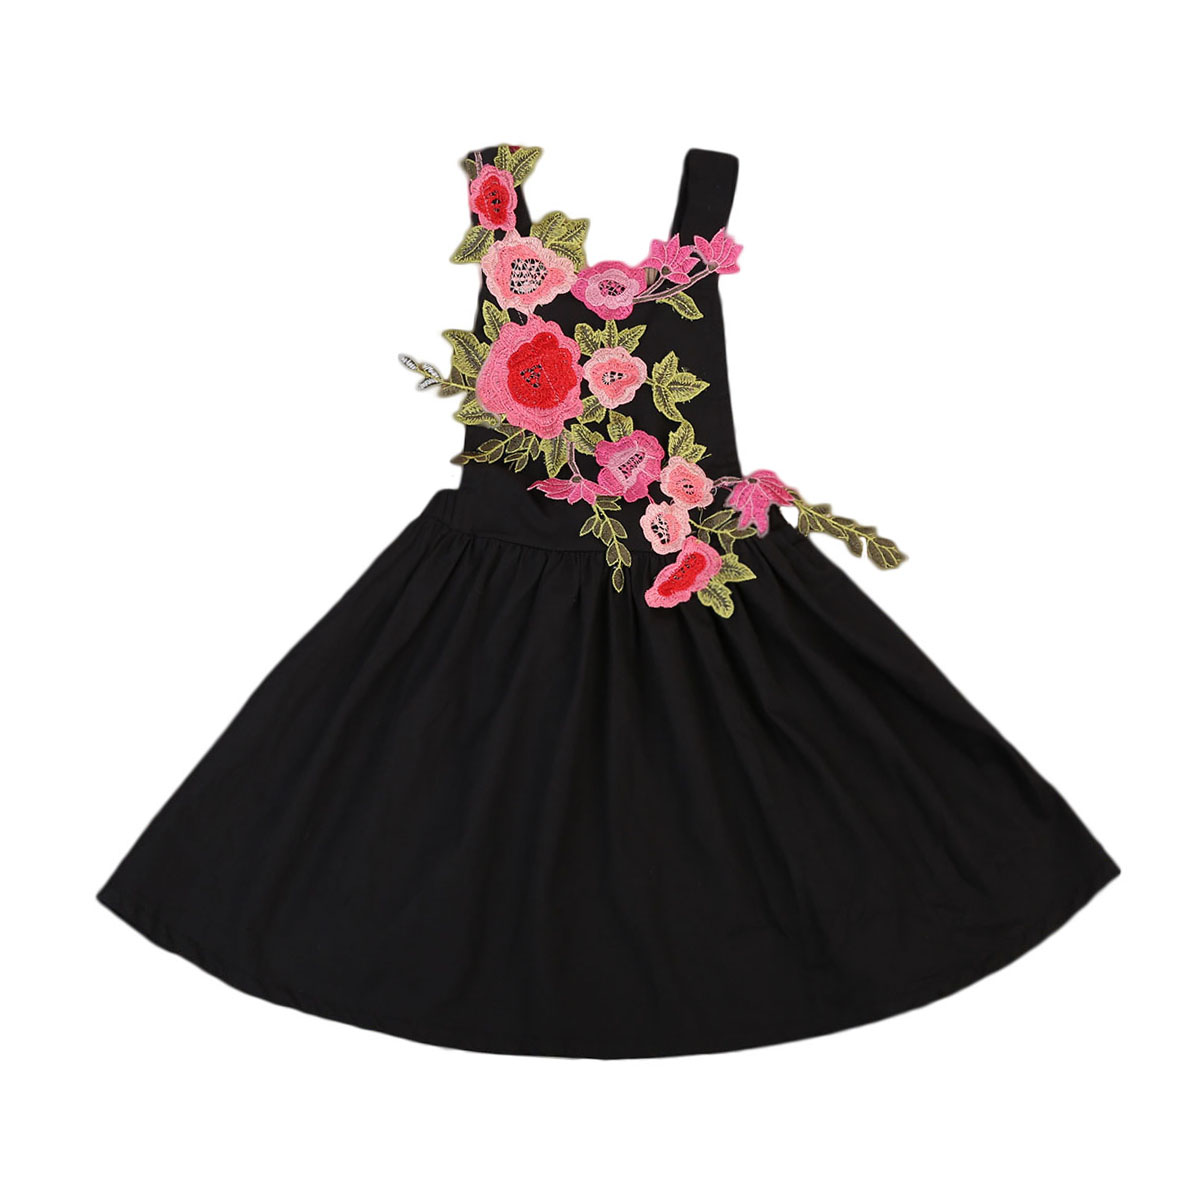 Baby Girl Floral Dress Kids Party Wedding Pageant Formal Sleeveless Flower Cotton Sundress Clothes